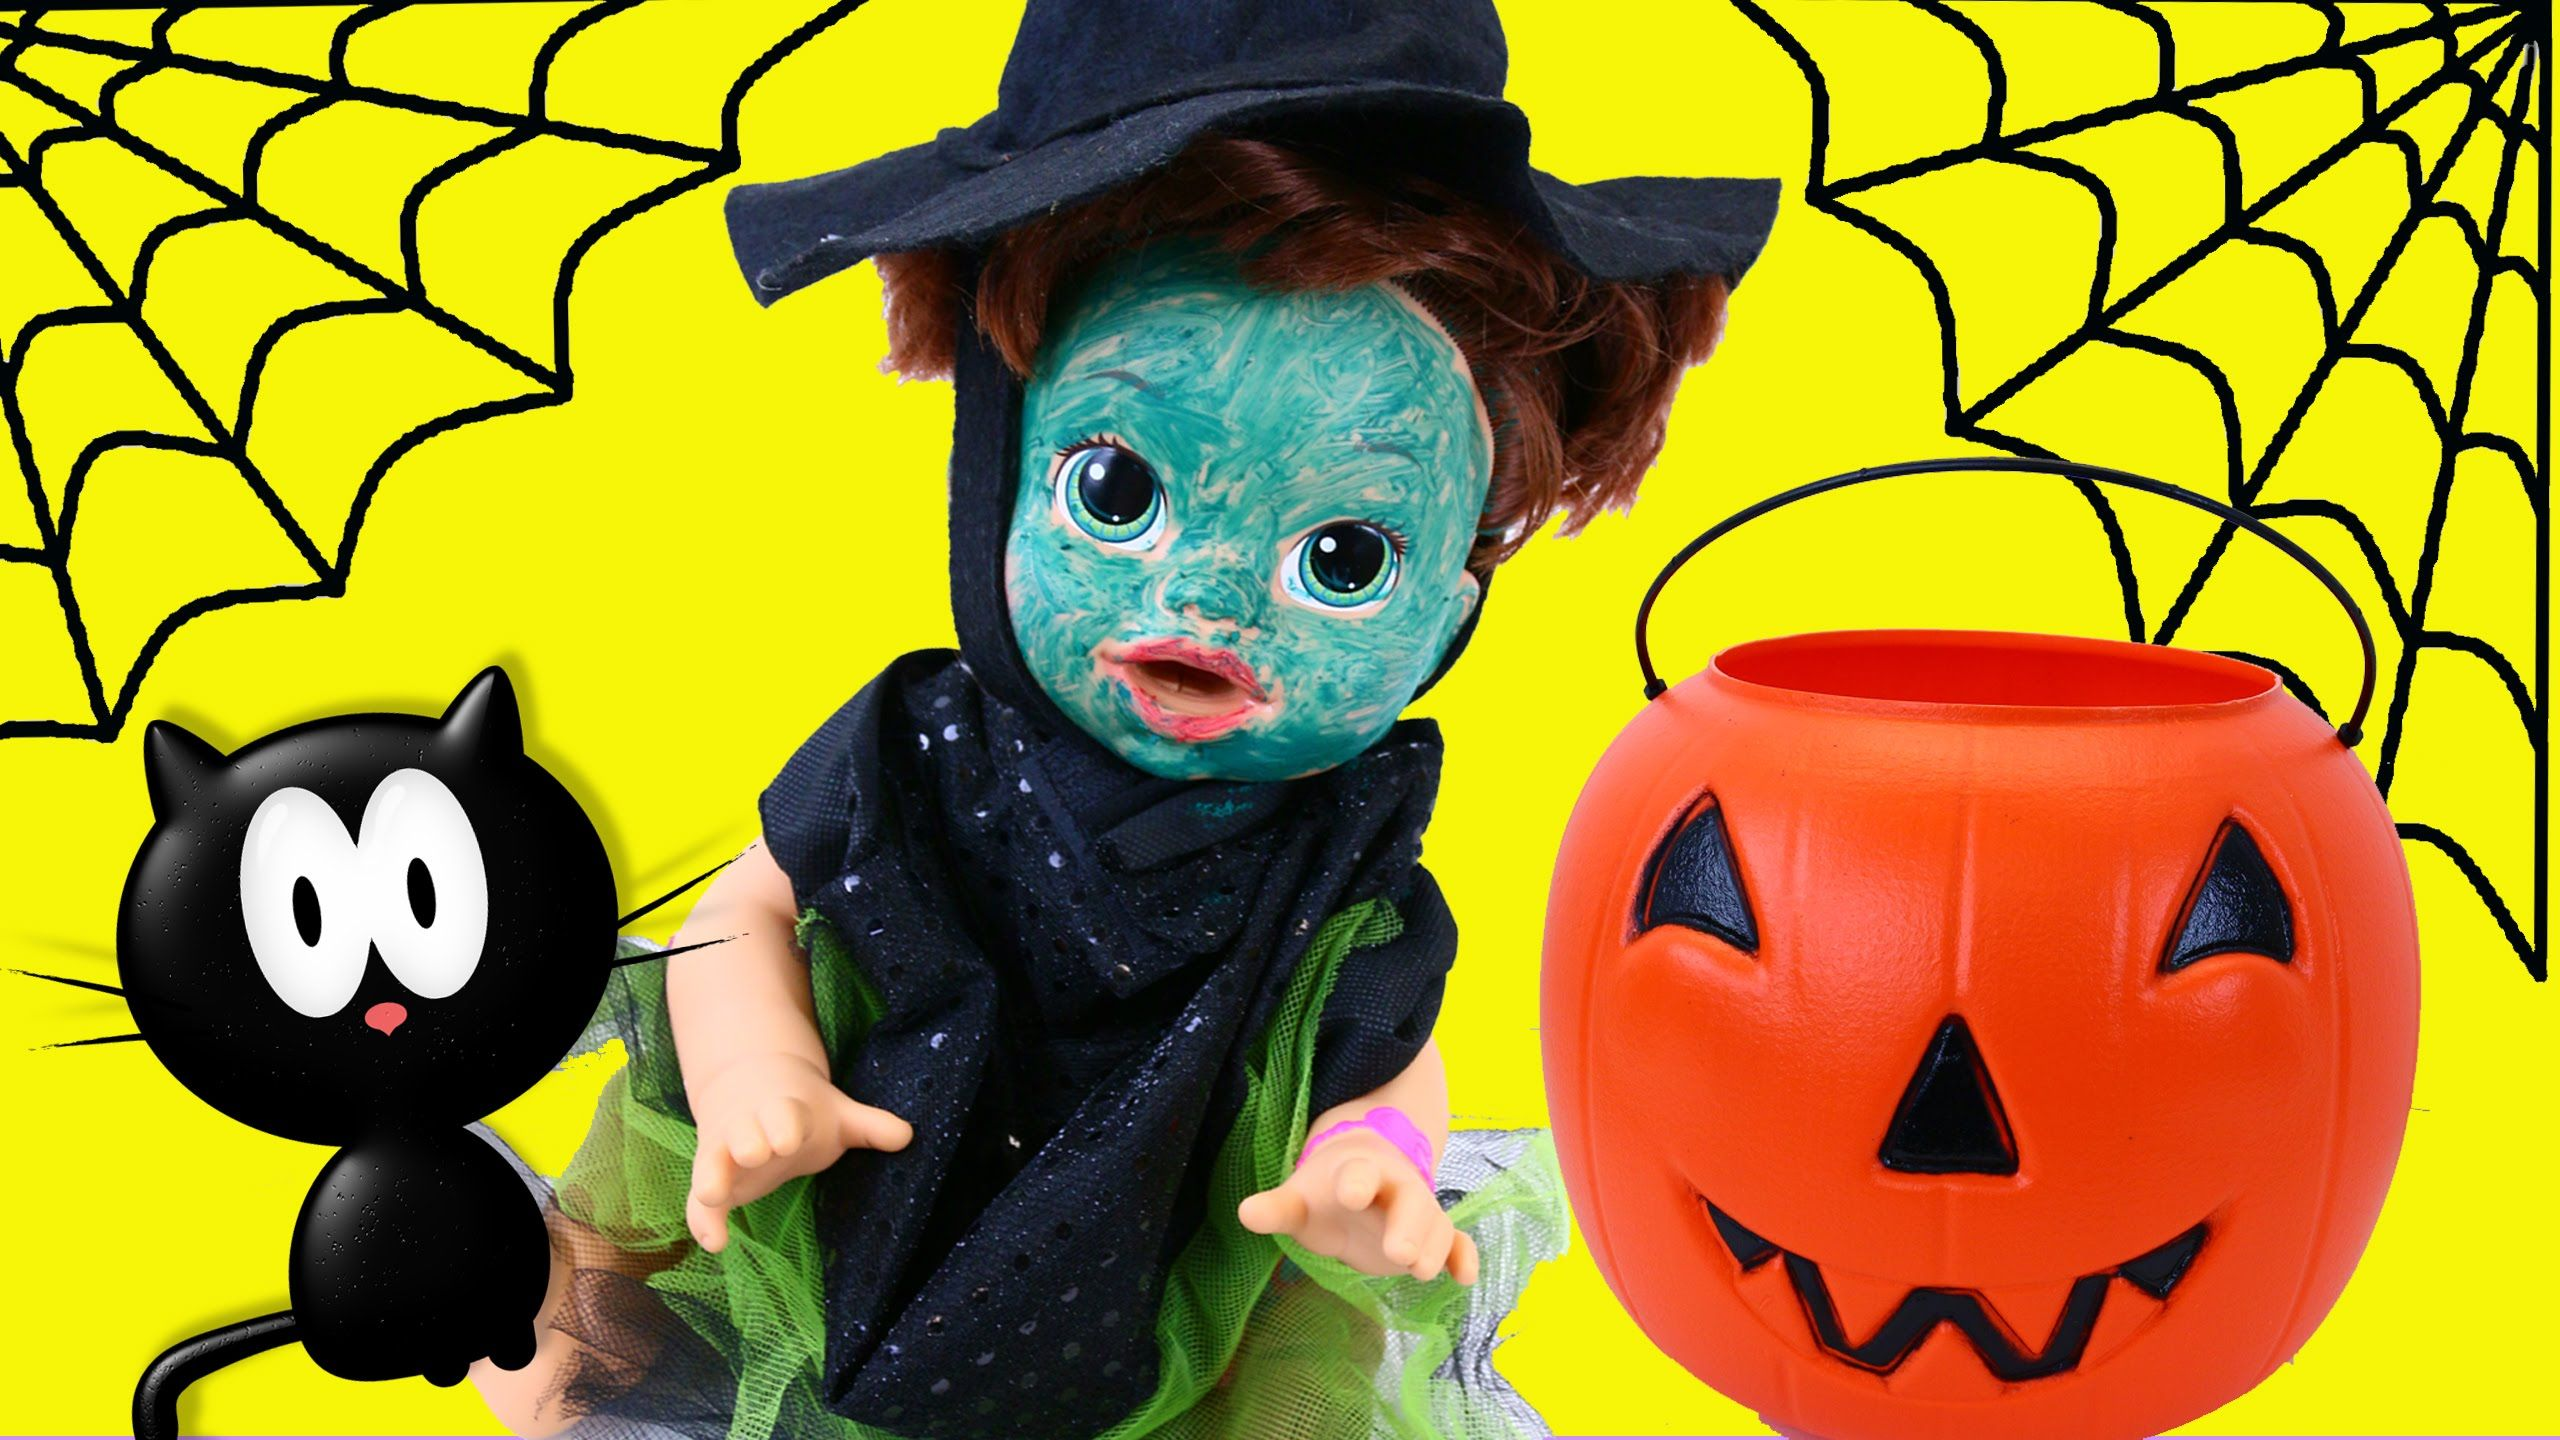 baby alive gets witch halloween costume + surprise toys trick or